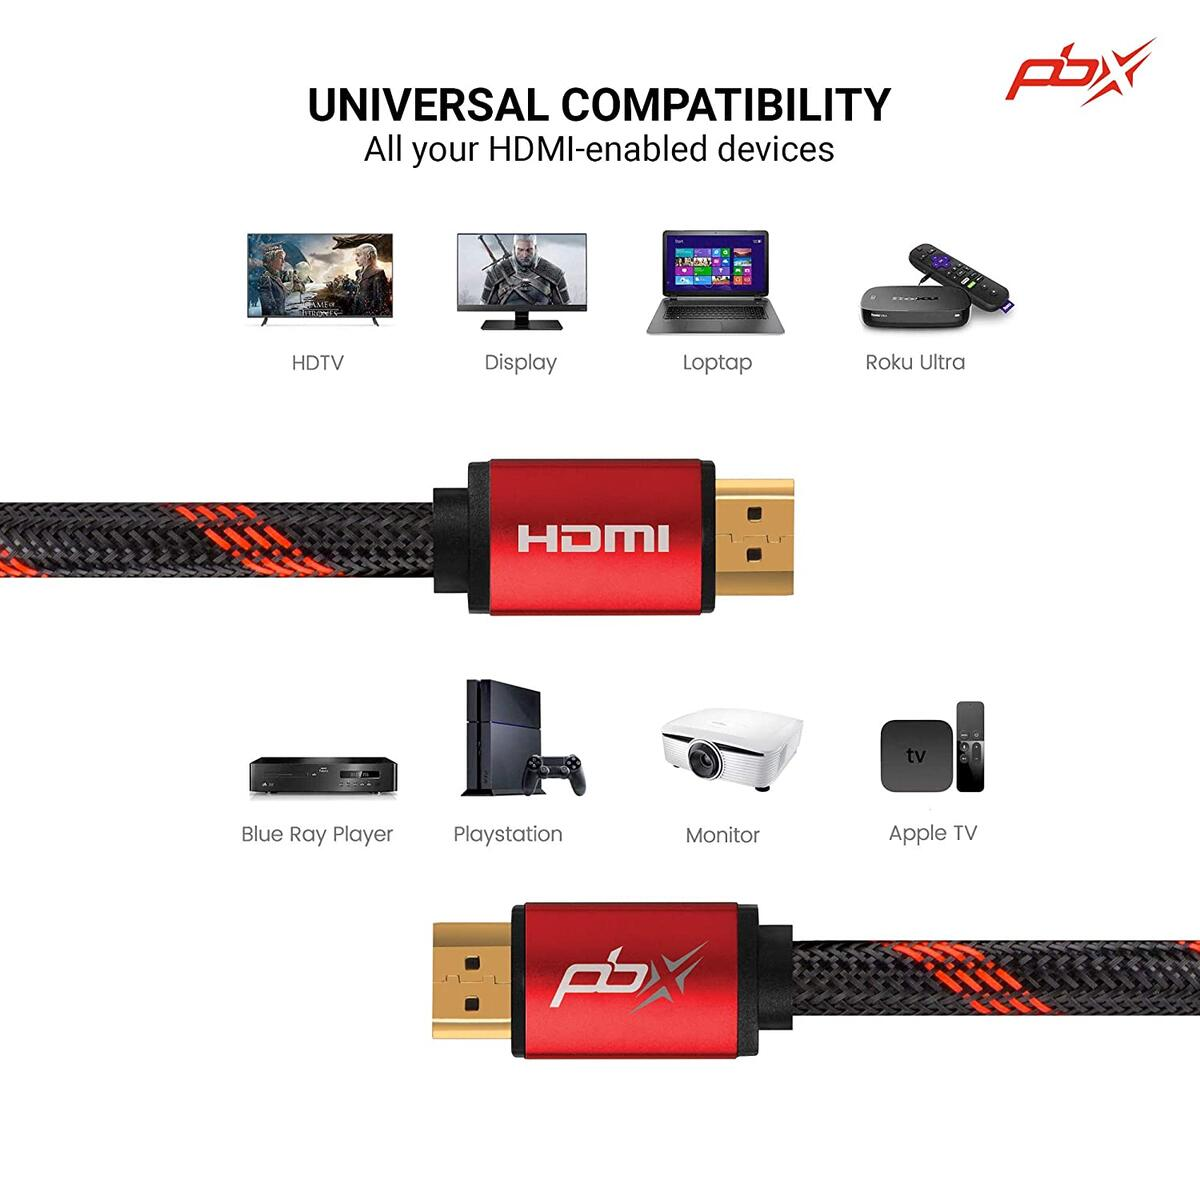 PBX Premium HDMI Cable, High Speed 18GBPS, Braided Cord, 6-Foot